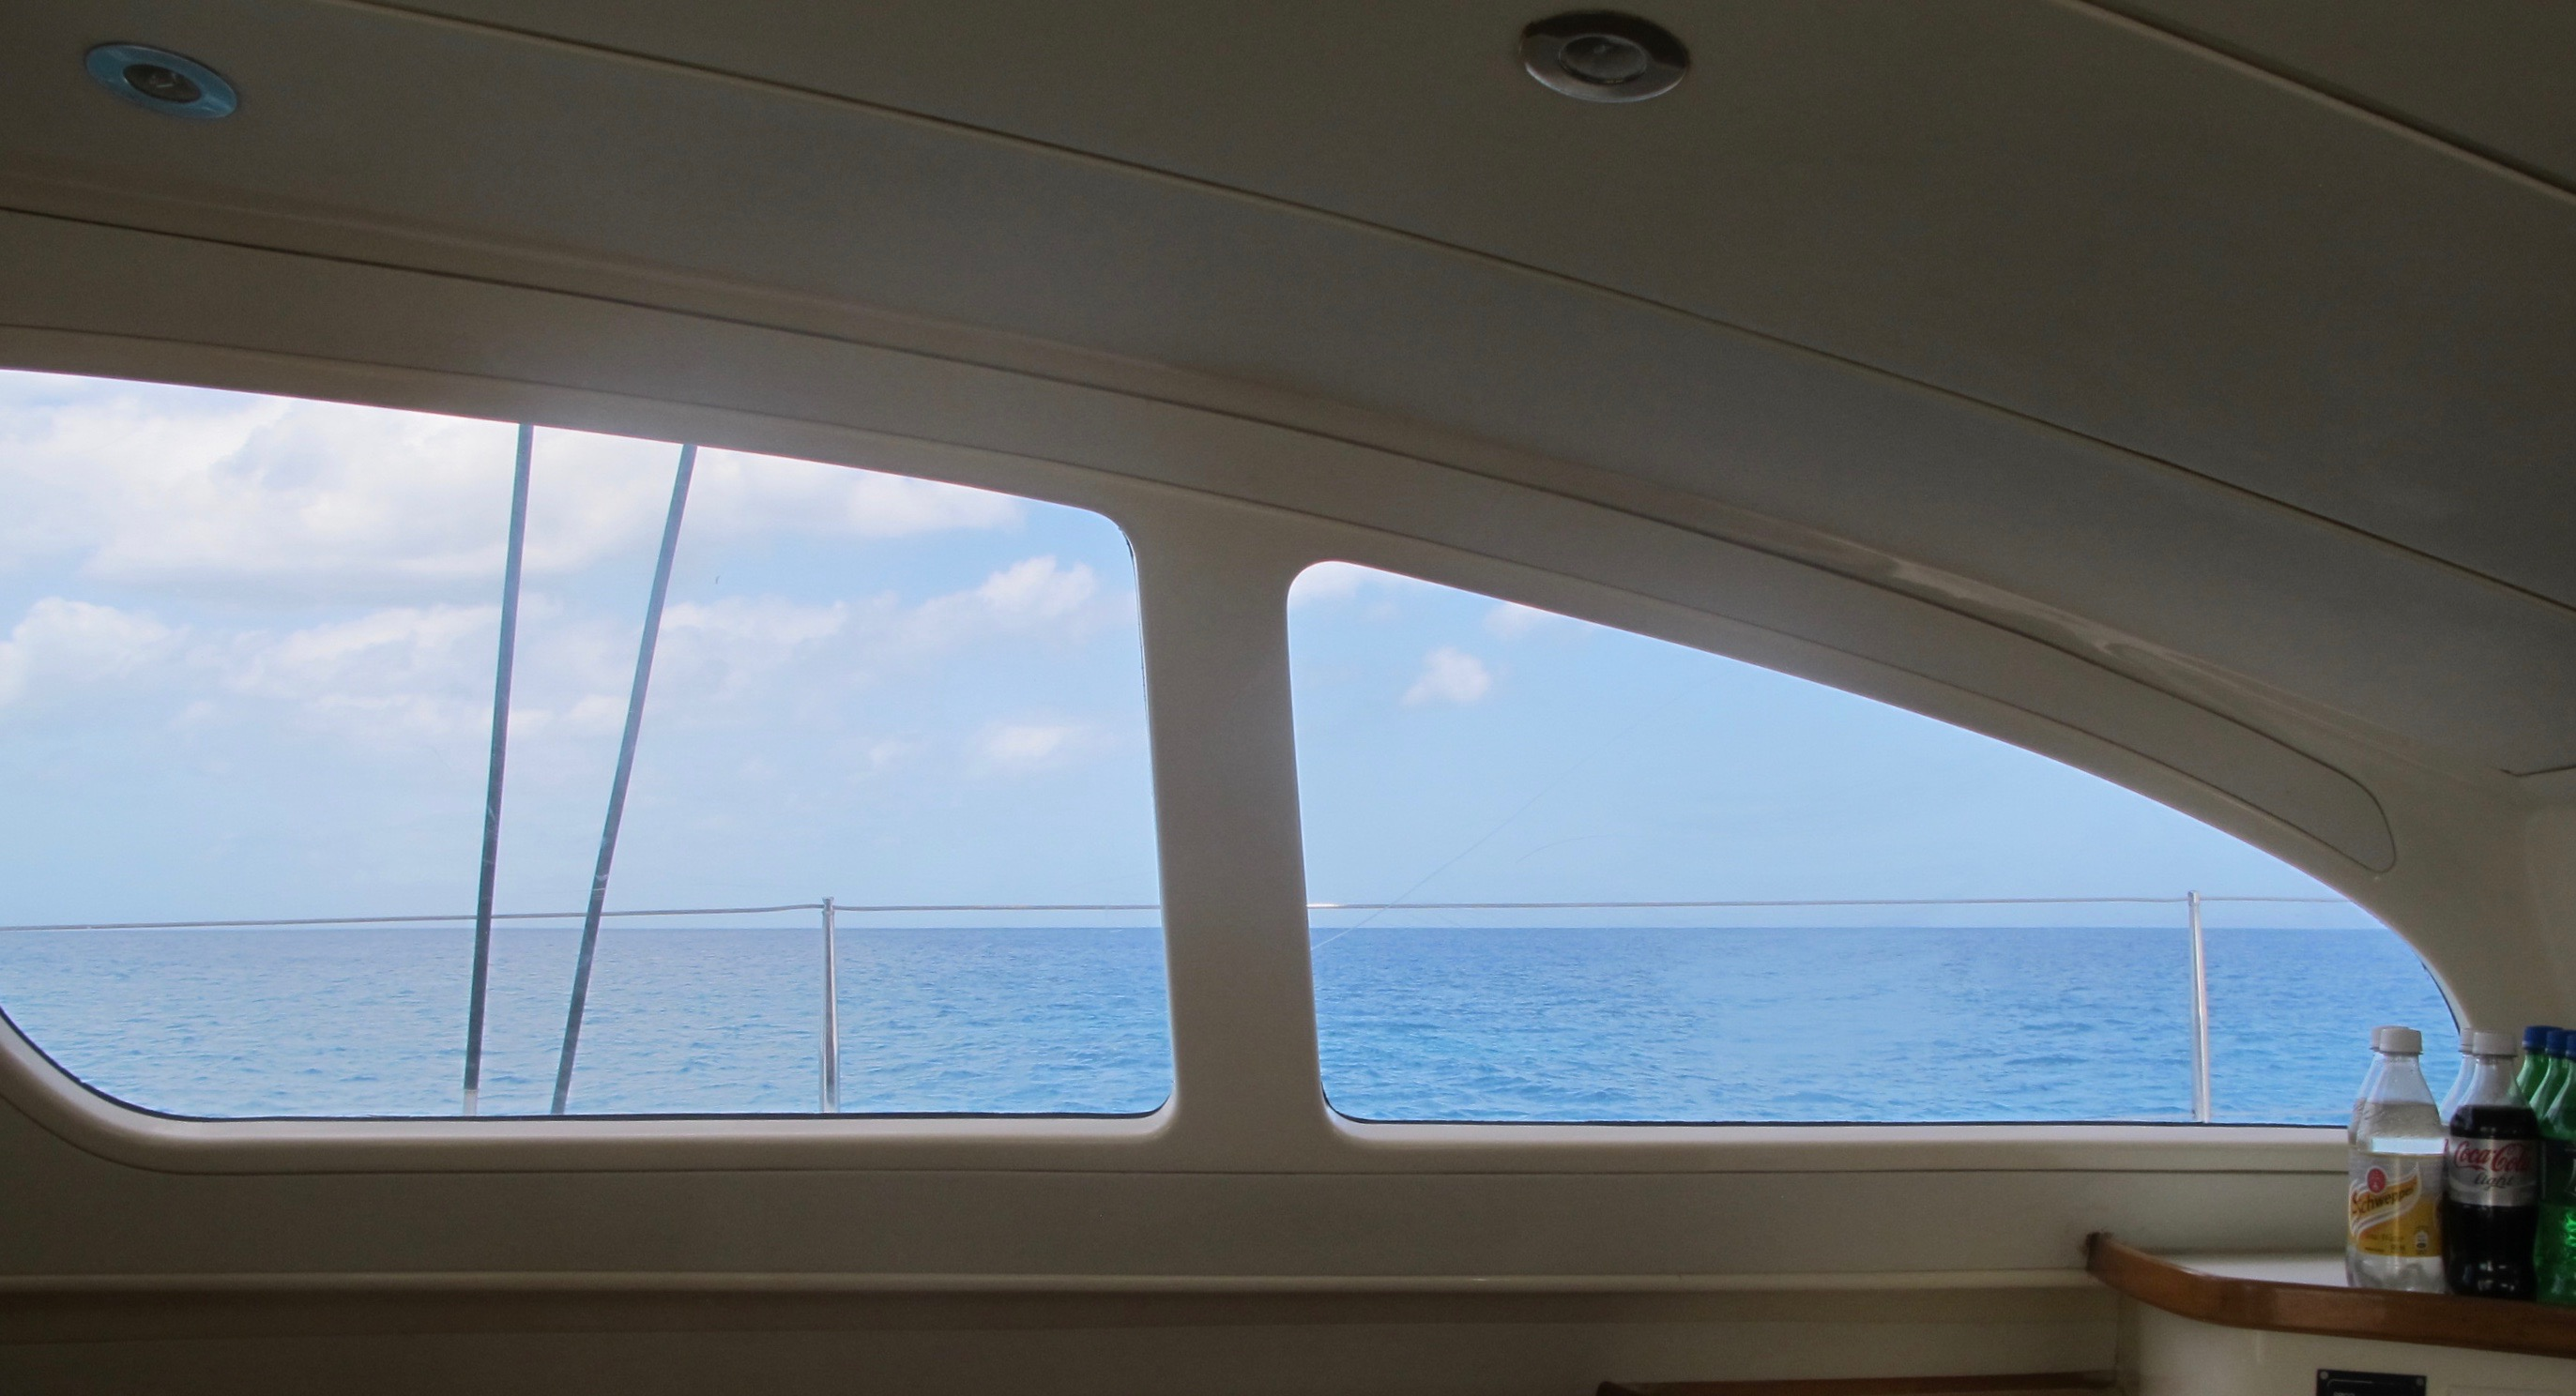 boat-view-caribbean-sea